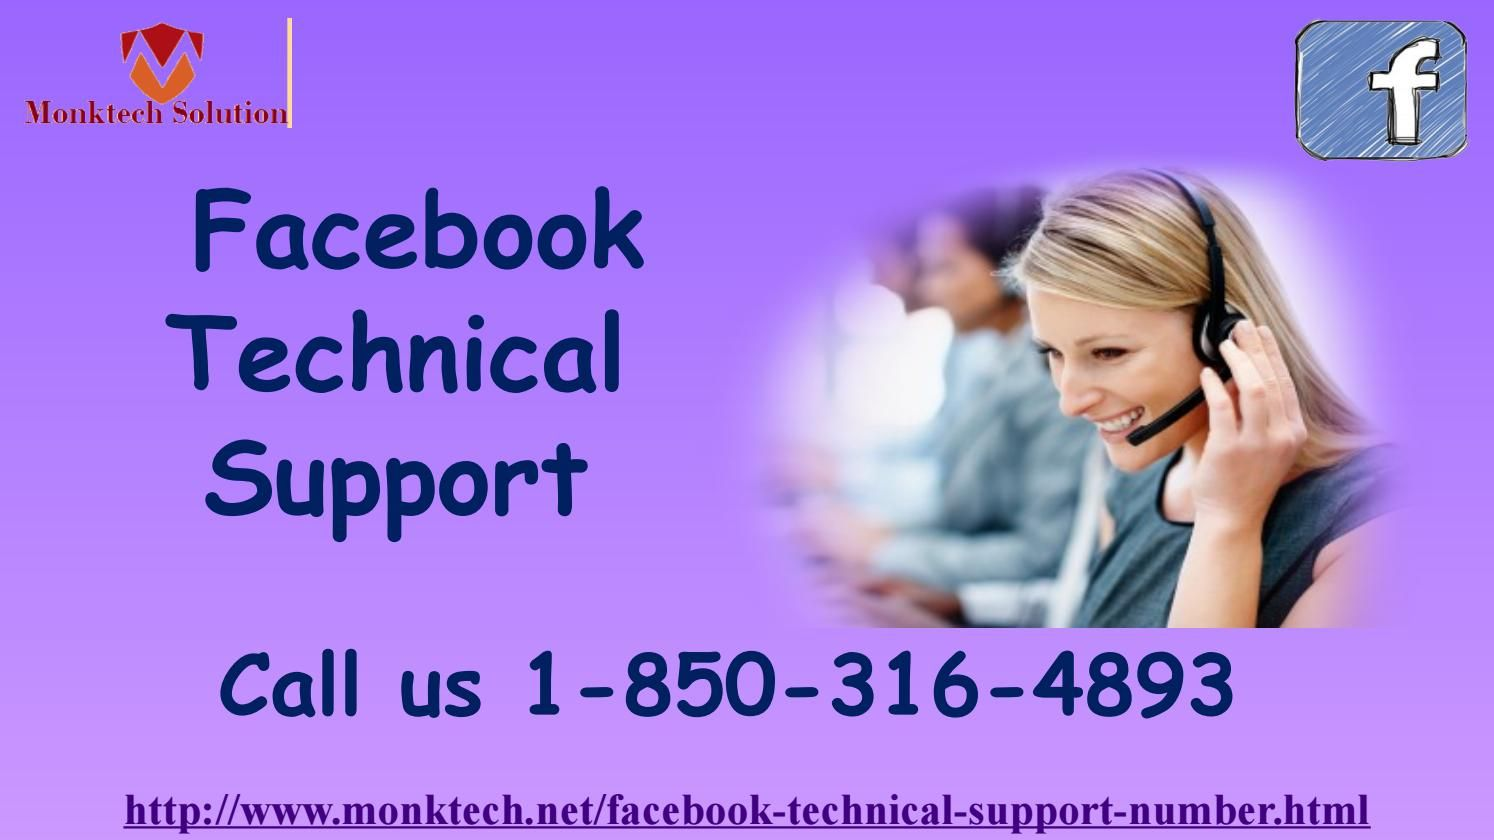 Can I take help from Facebook Technical Support team 1-850-316-4893? Yes, you can take help from Facebook Technical Support team at anytime from anywhere. Just, make a call at 1-850-316-4893 where your call will be picked up by our team's experts who will listen up all your queries and offer you the best solution which could be possibly needed to wipe-out all your Facebook issues. For more information visit: http://www.monktech.net/facebook-technical-support-number.html